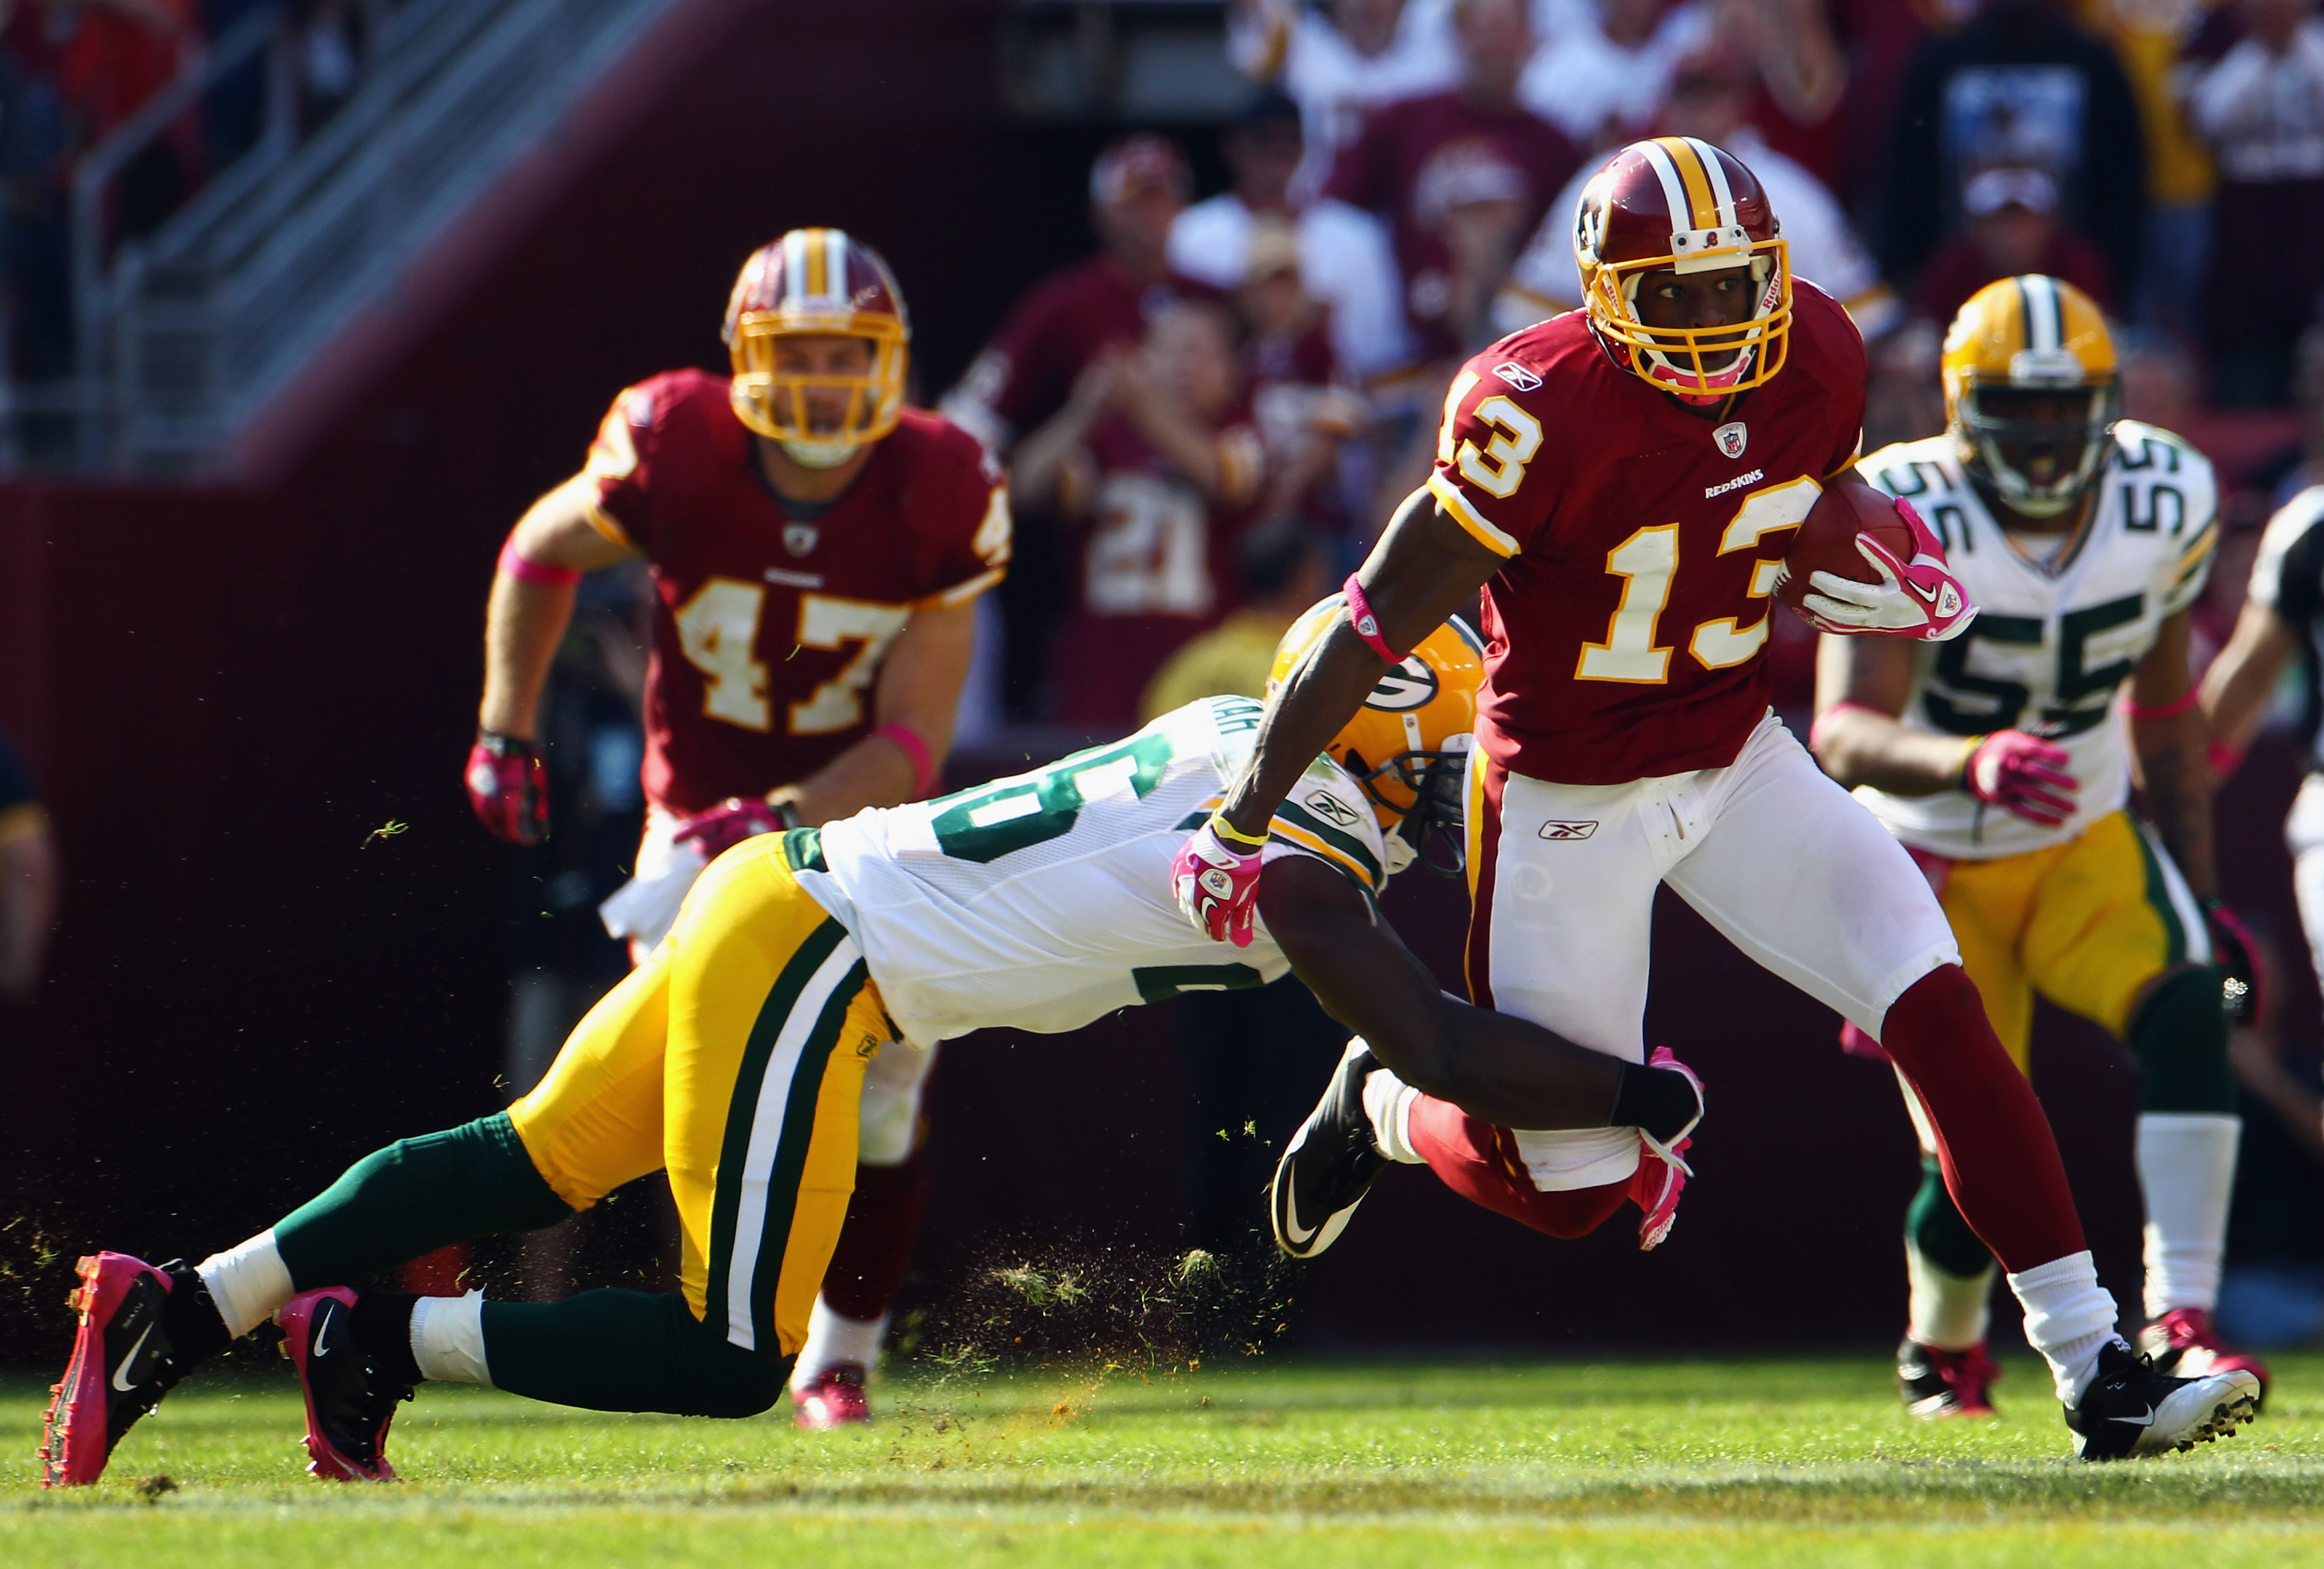 LANDOVER, MD - OCTOBER 10:  Wide receiver Anthony Armstrong #13 of the Washington Redskins runs after a catch while being tackled by defensive back Josh Bell #26 of the Green Bay Packers in the fourth quarter at FedExField on October 10, 2010 in Landover,